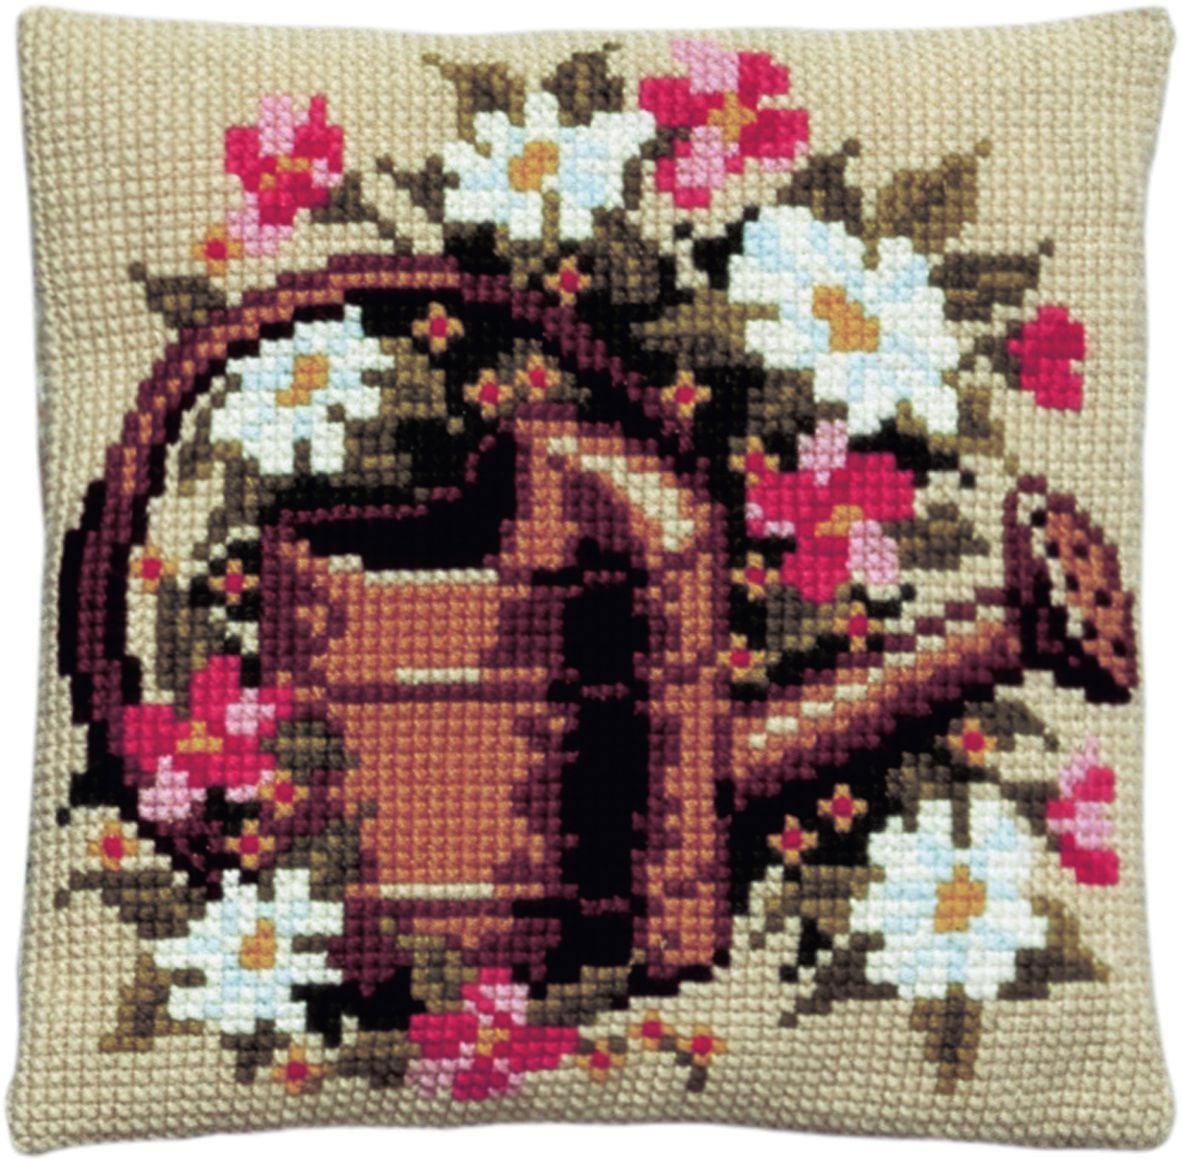 cross stitch cushion flowers in watering can printed